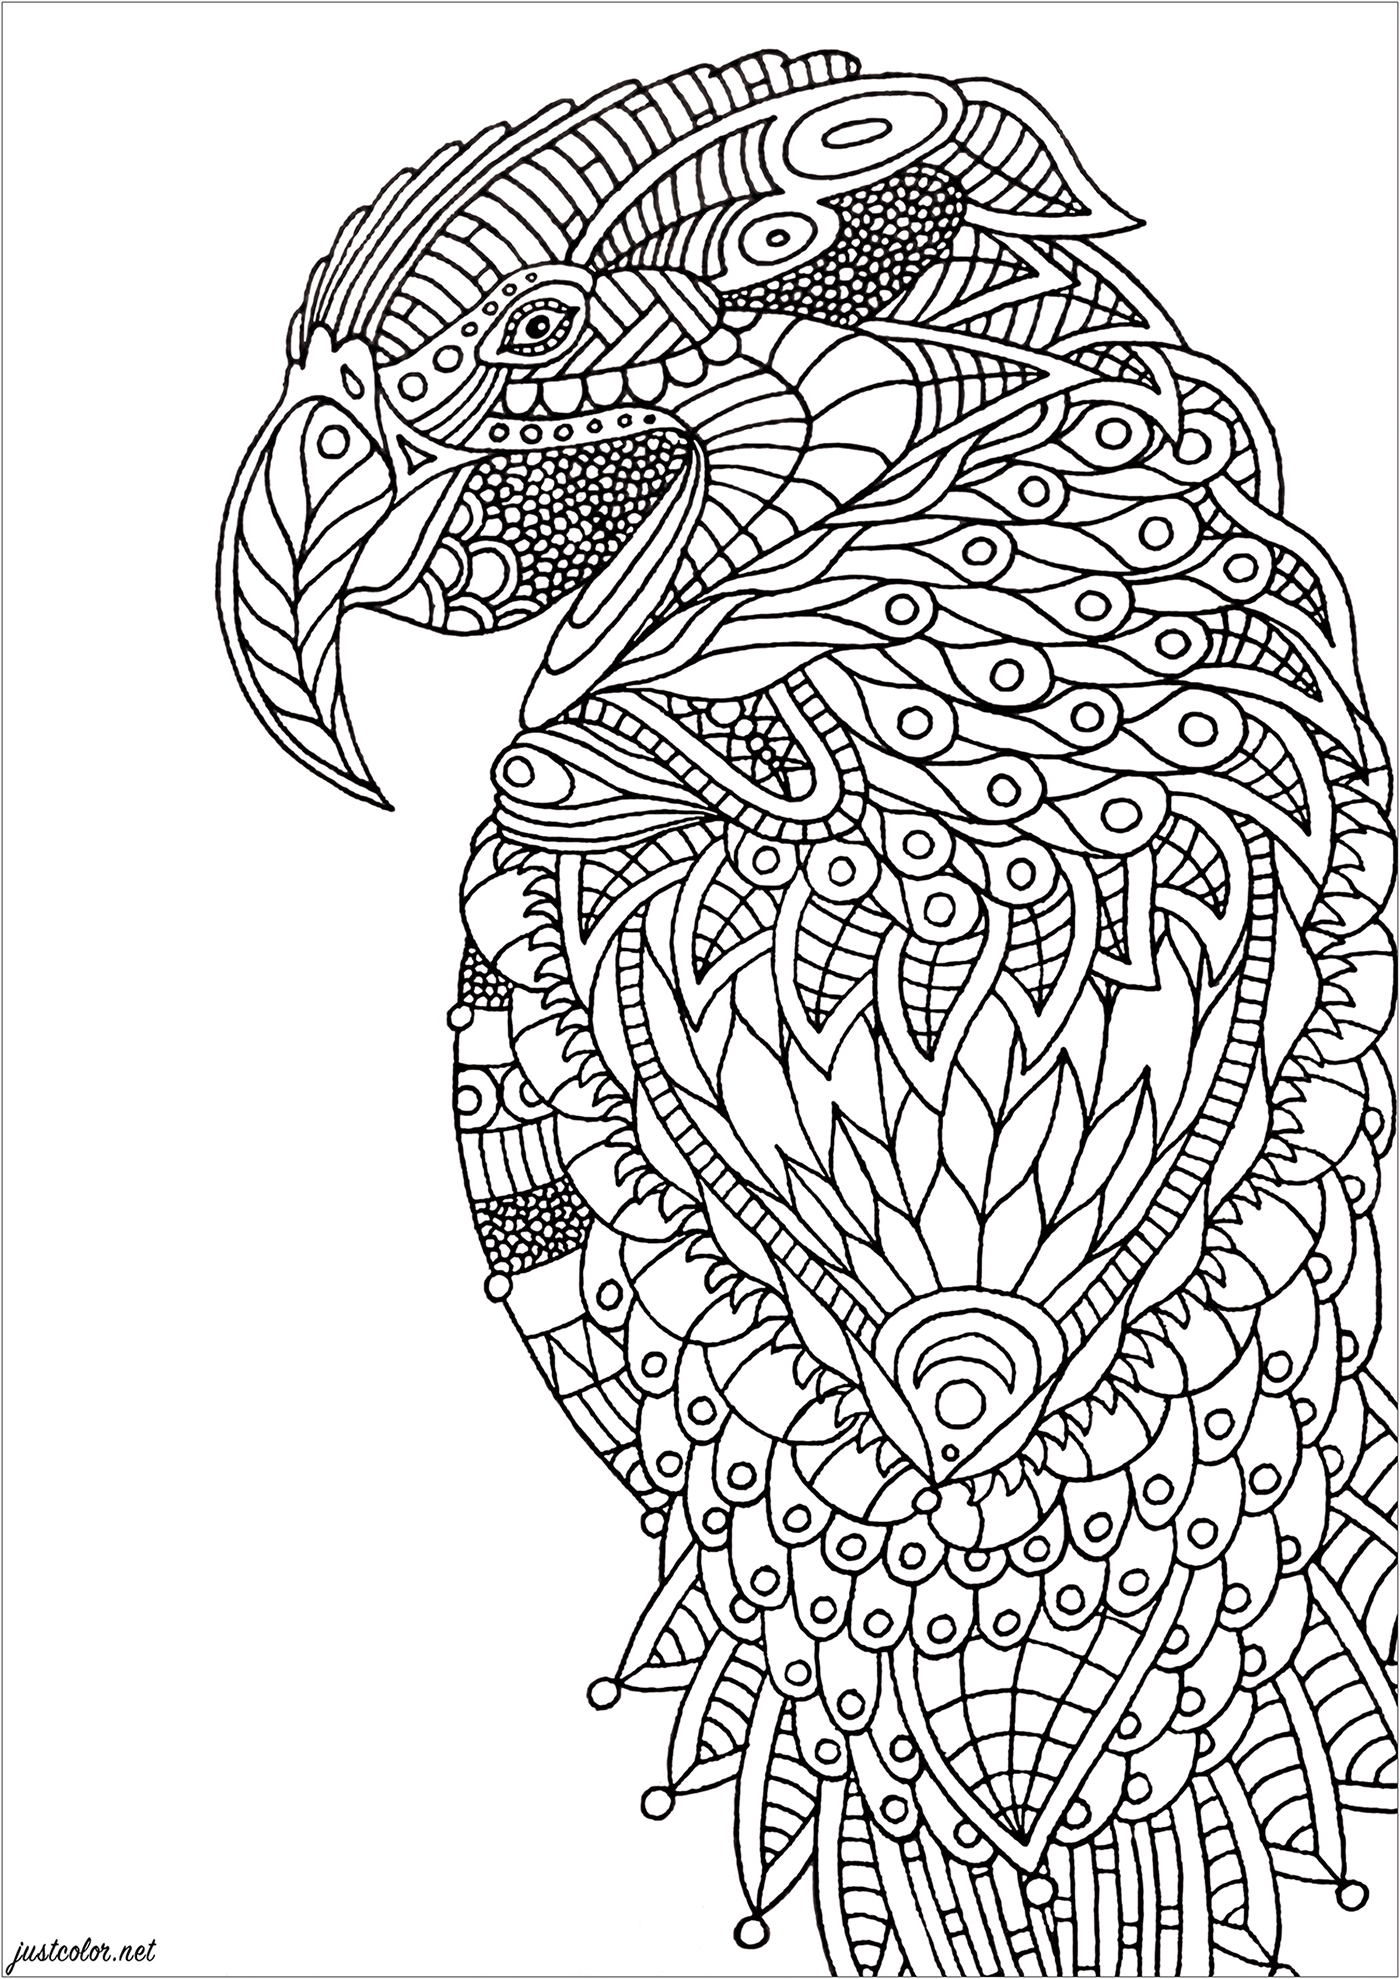 Color the various details of this Zentangle coloring page, representing a parrot